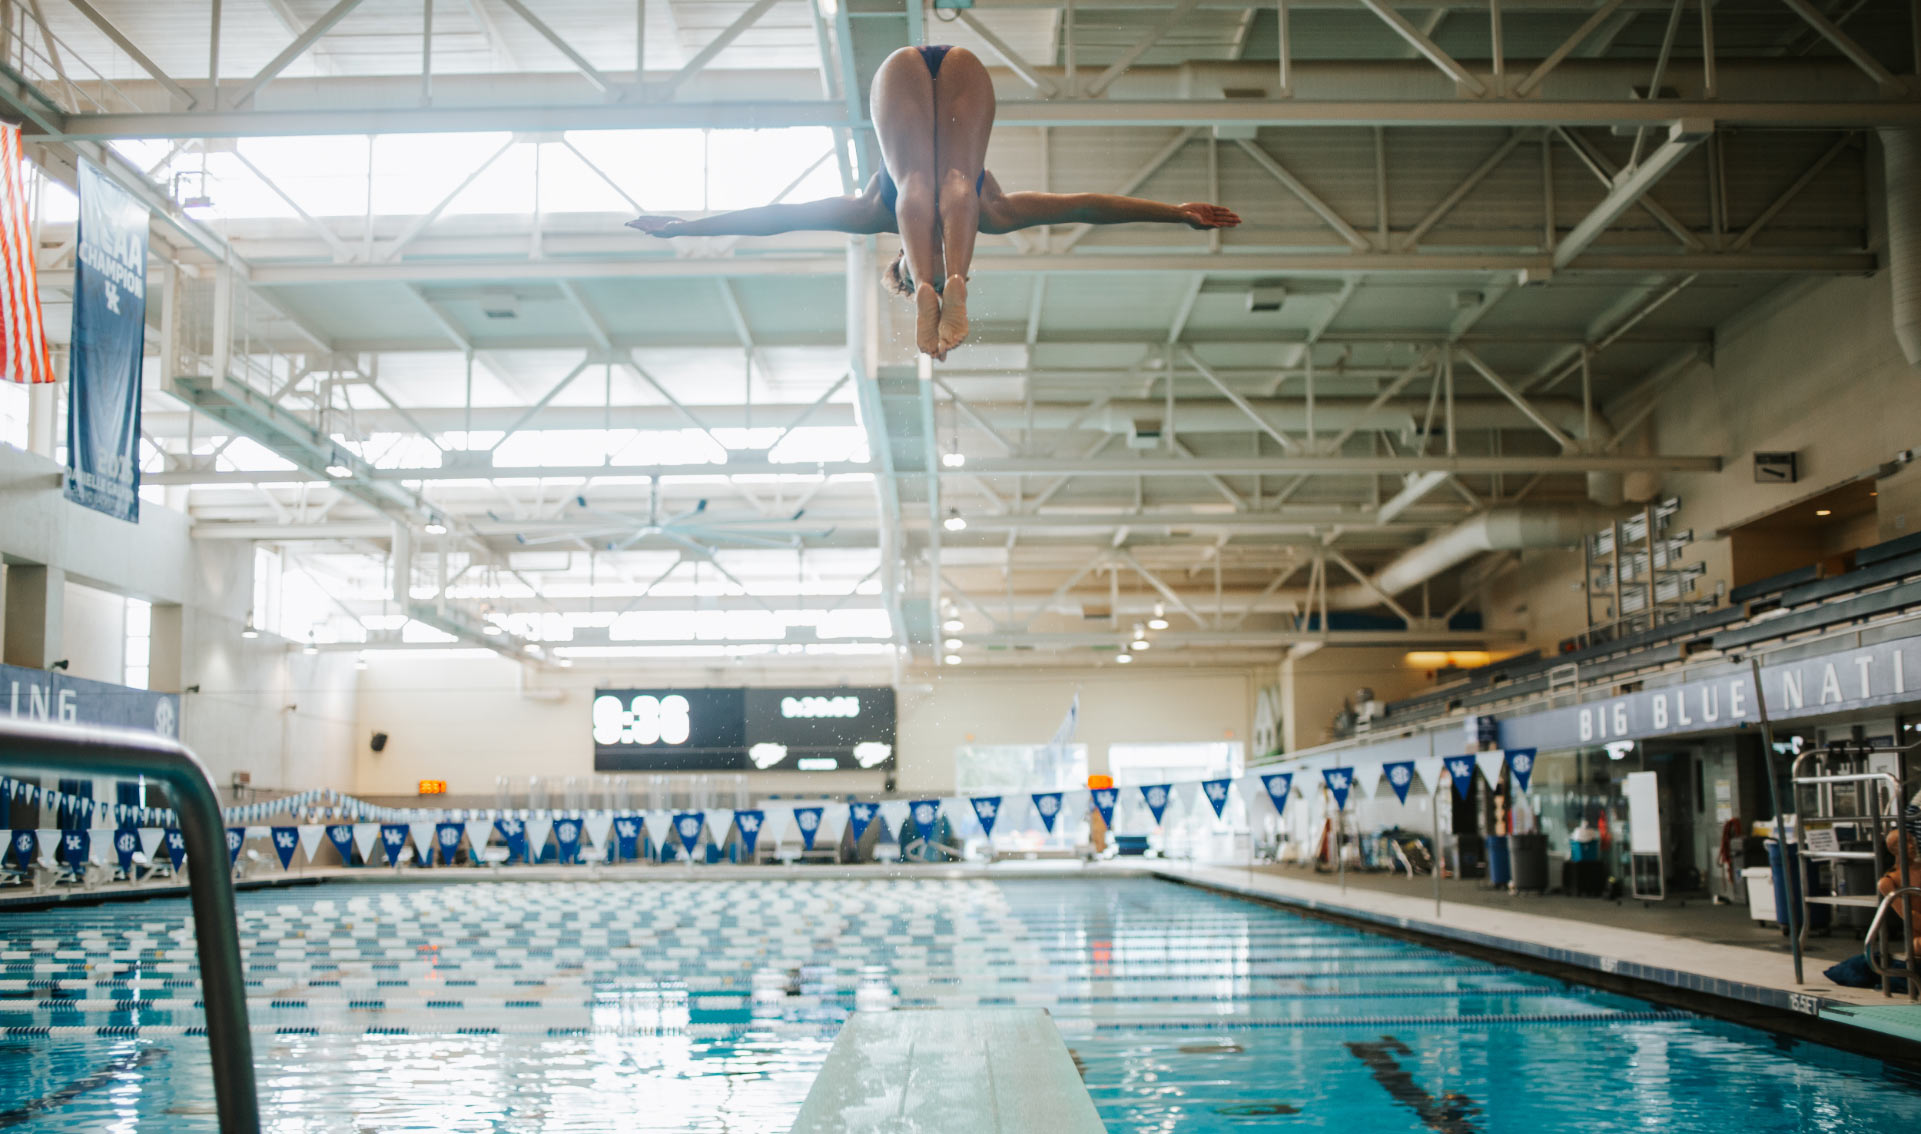 A photo of Jaida mid-dive, her head and feet meeting in the air as she flips into the pool.